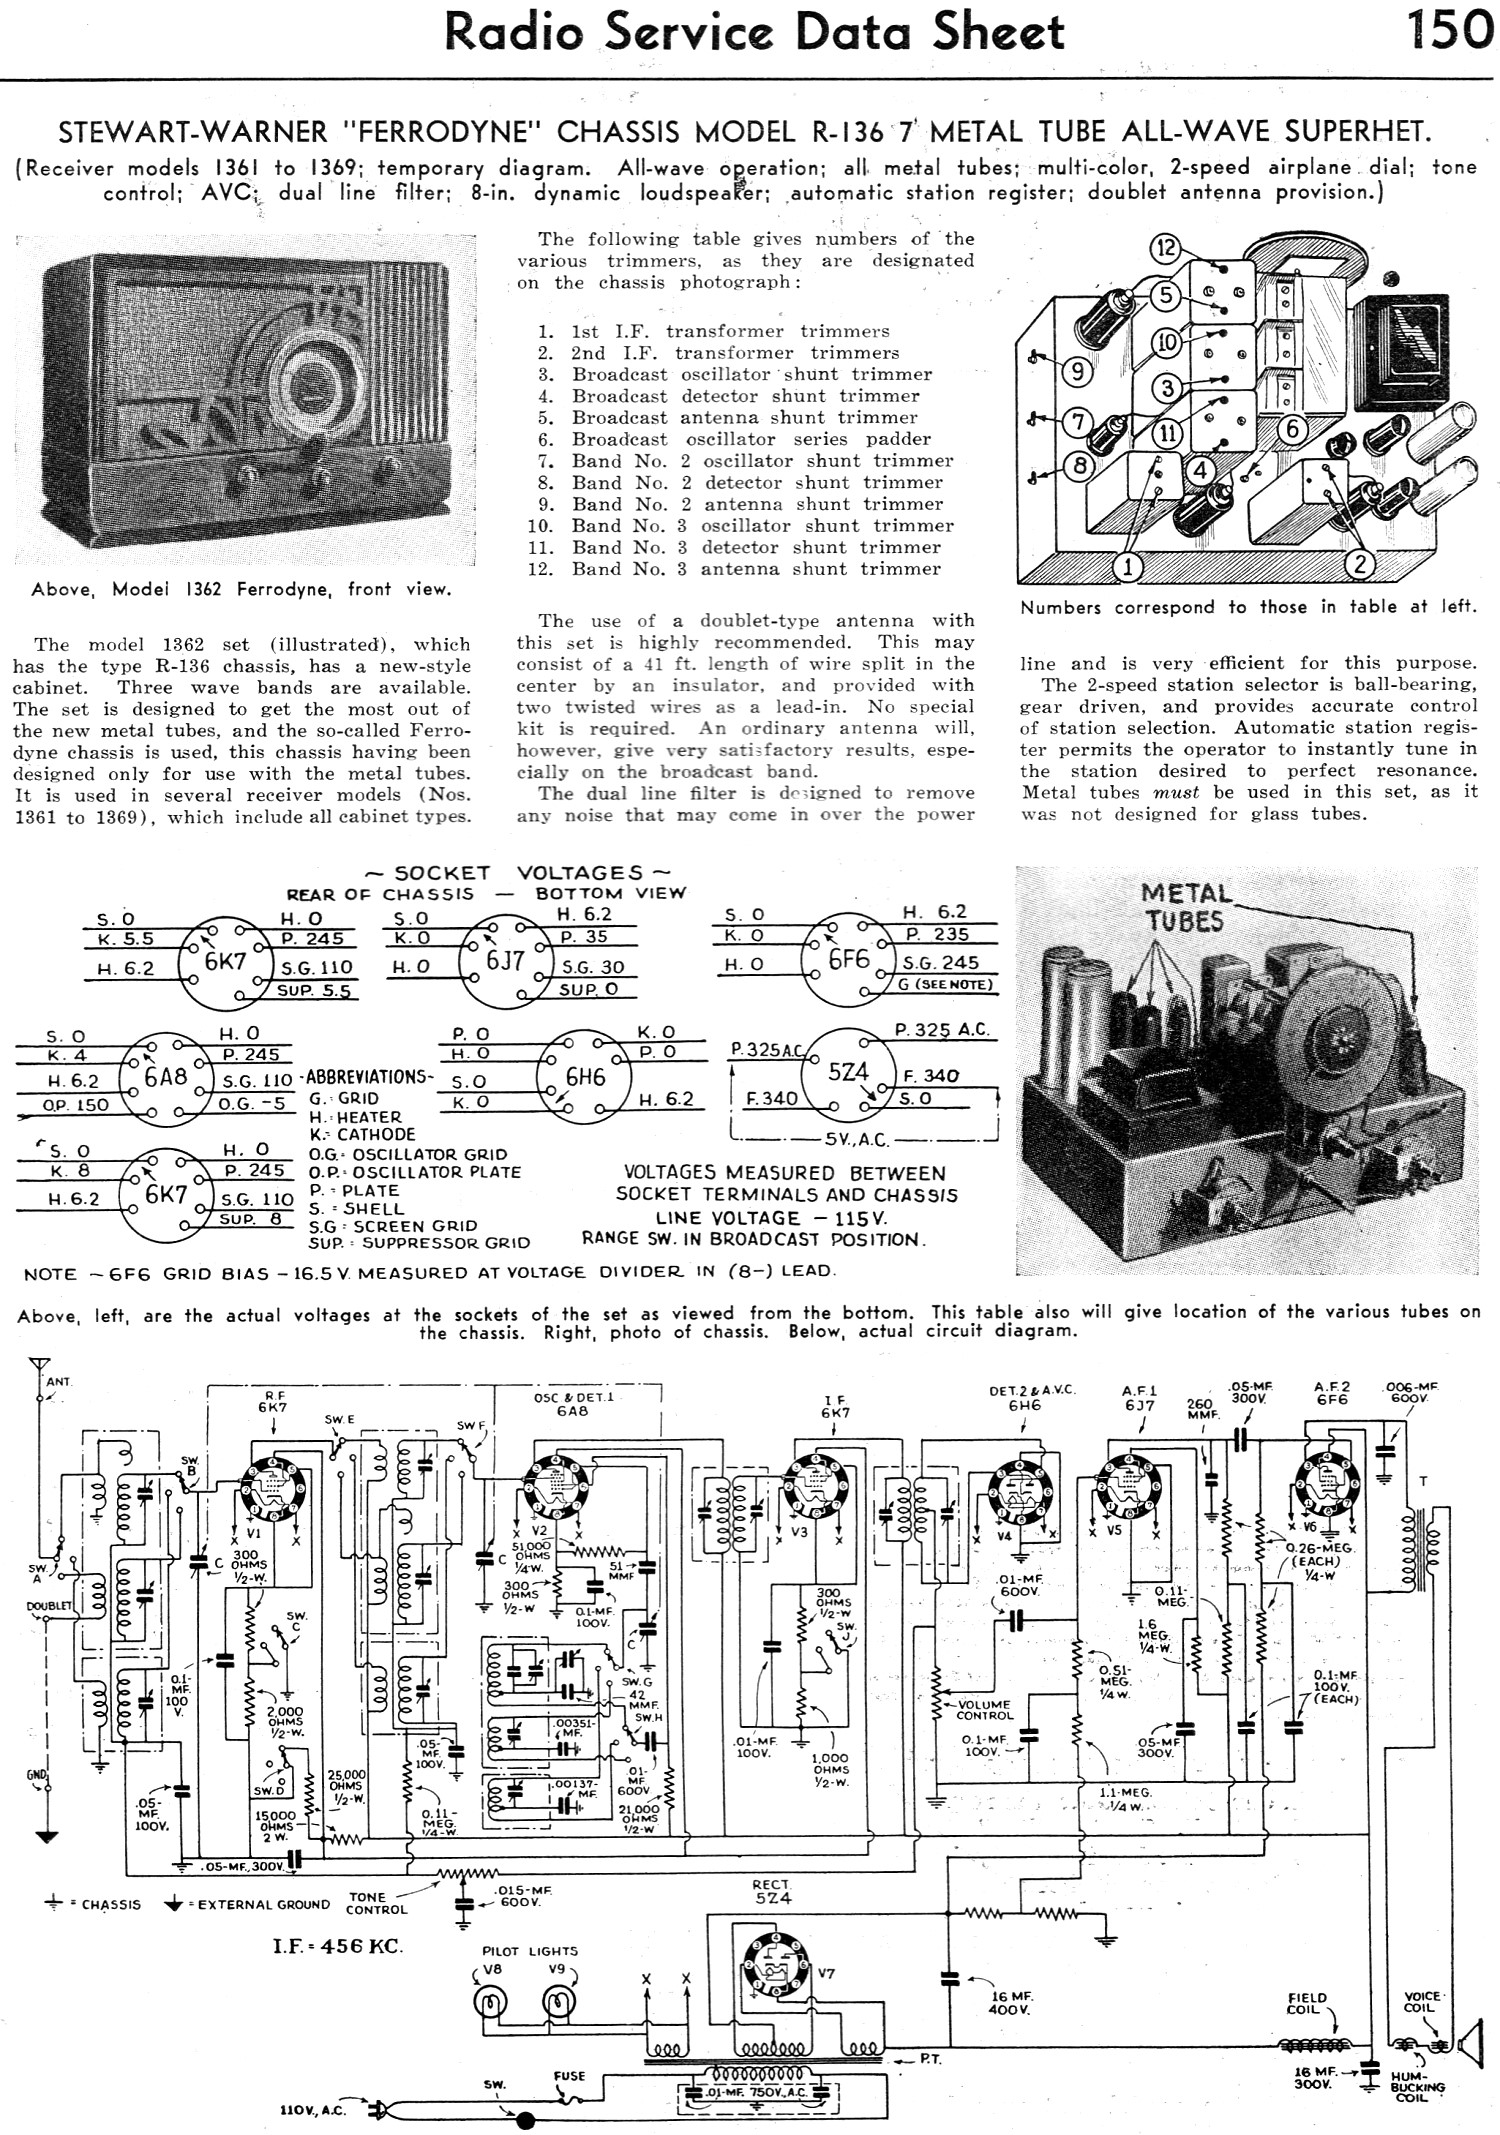 stewart warner ferrodyne r 136 service data sheet radio craft november 1935 stewart warner voltmeter wiring diagram stewart warner gauges,Stewart Warner Wiring Diagrams